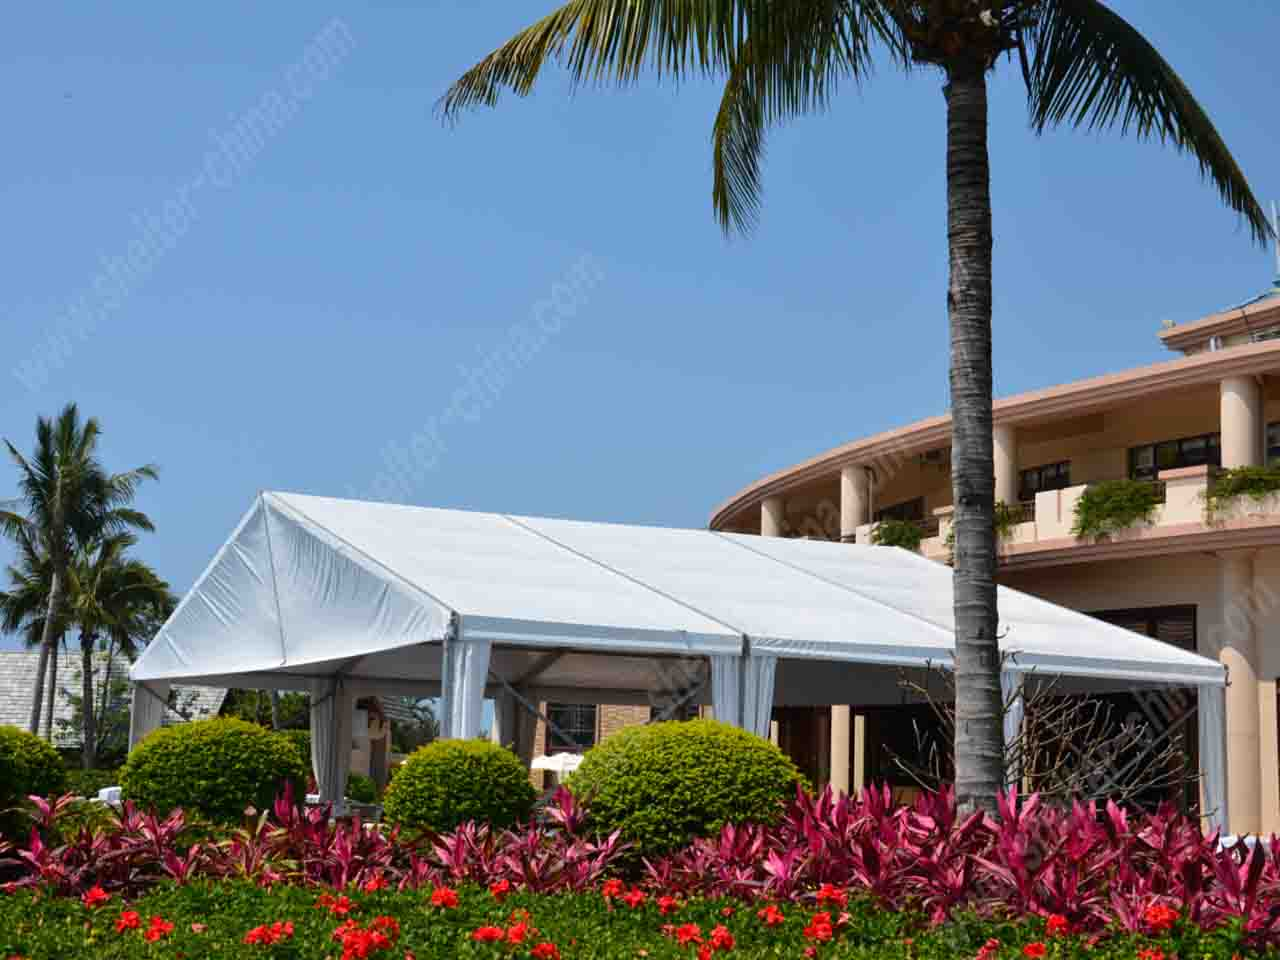 Luxury Garden Wedding Tent for 4 Season